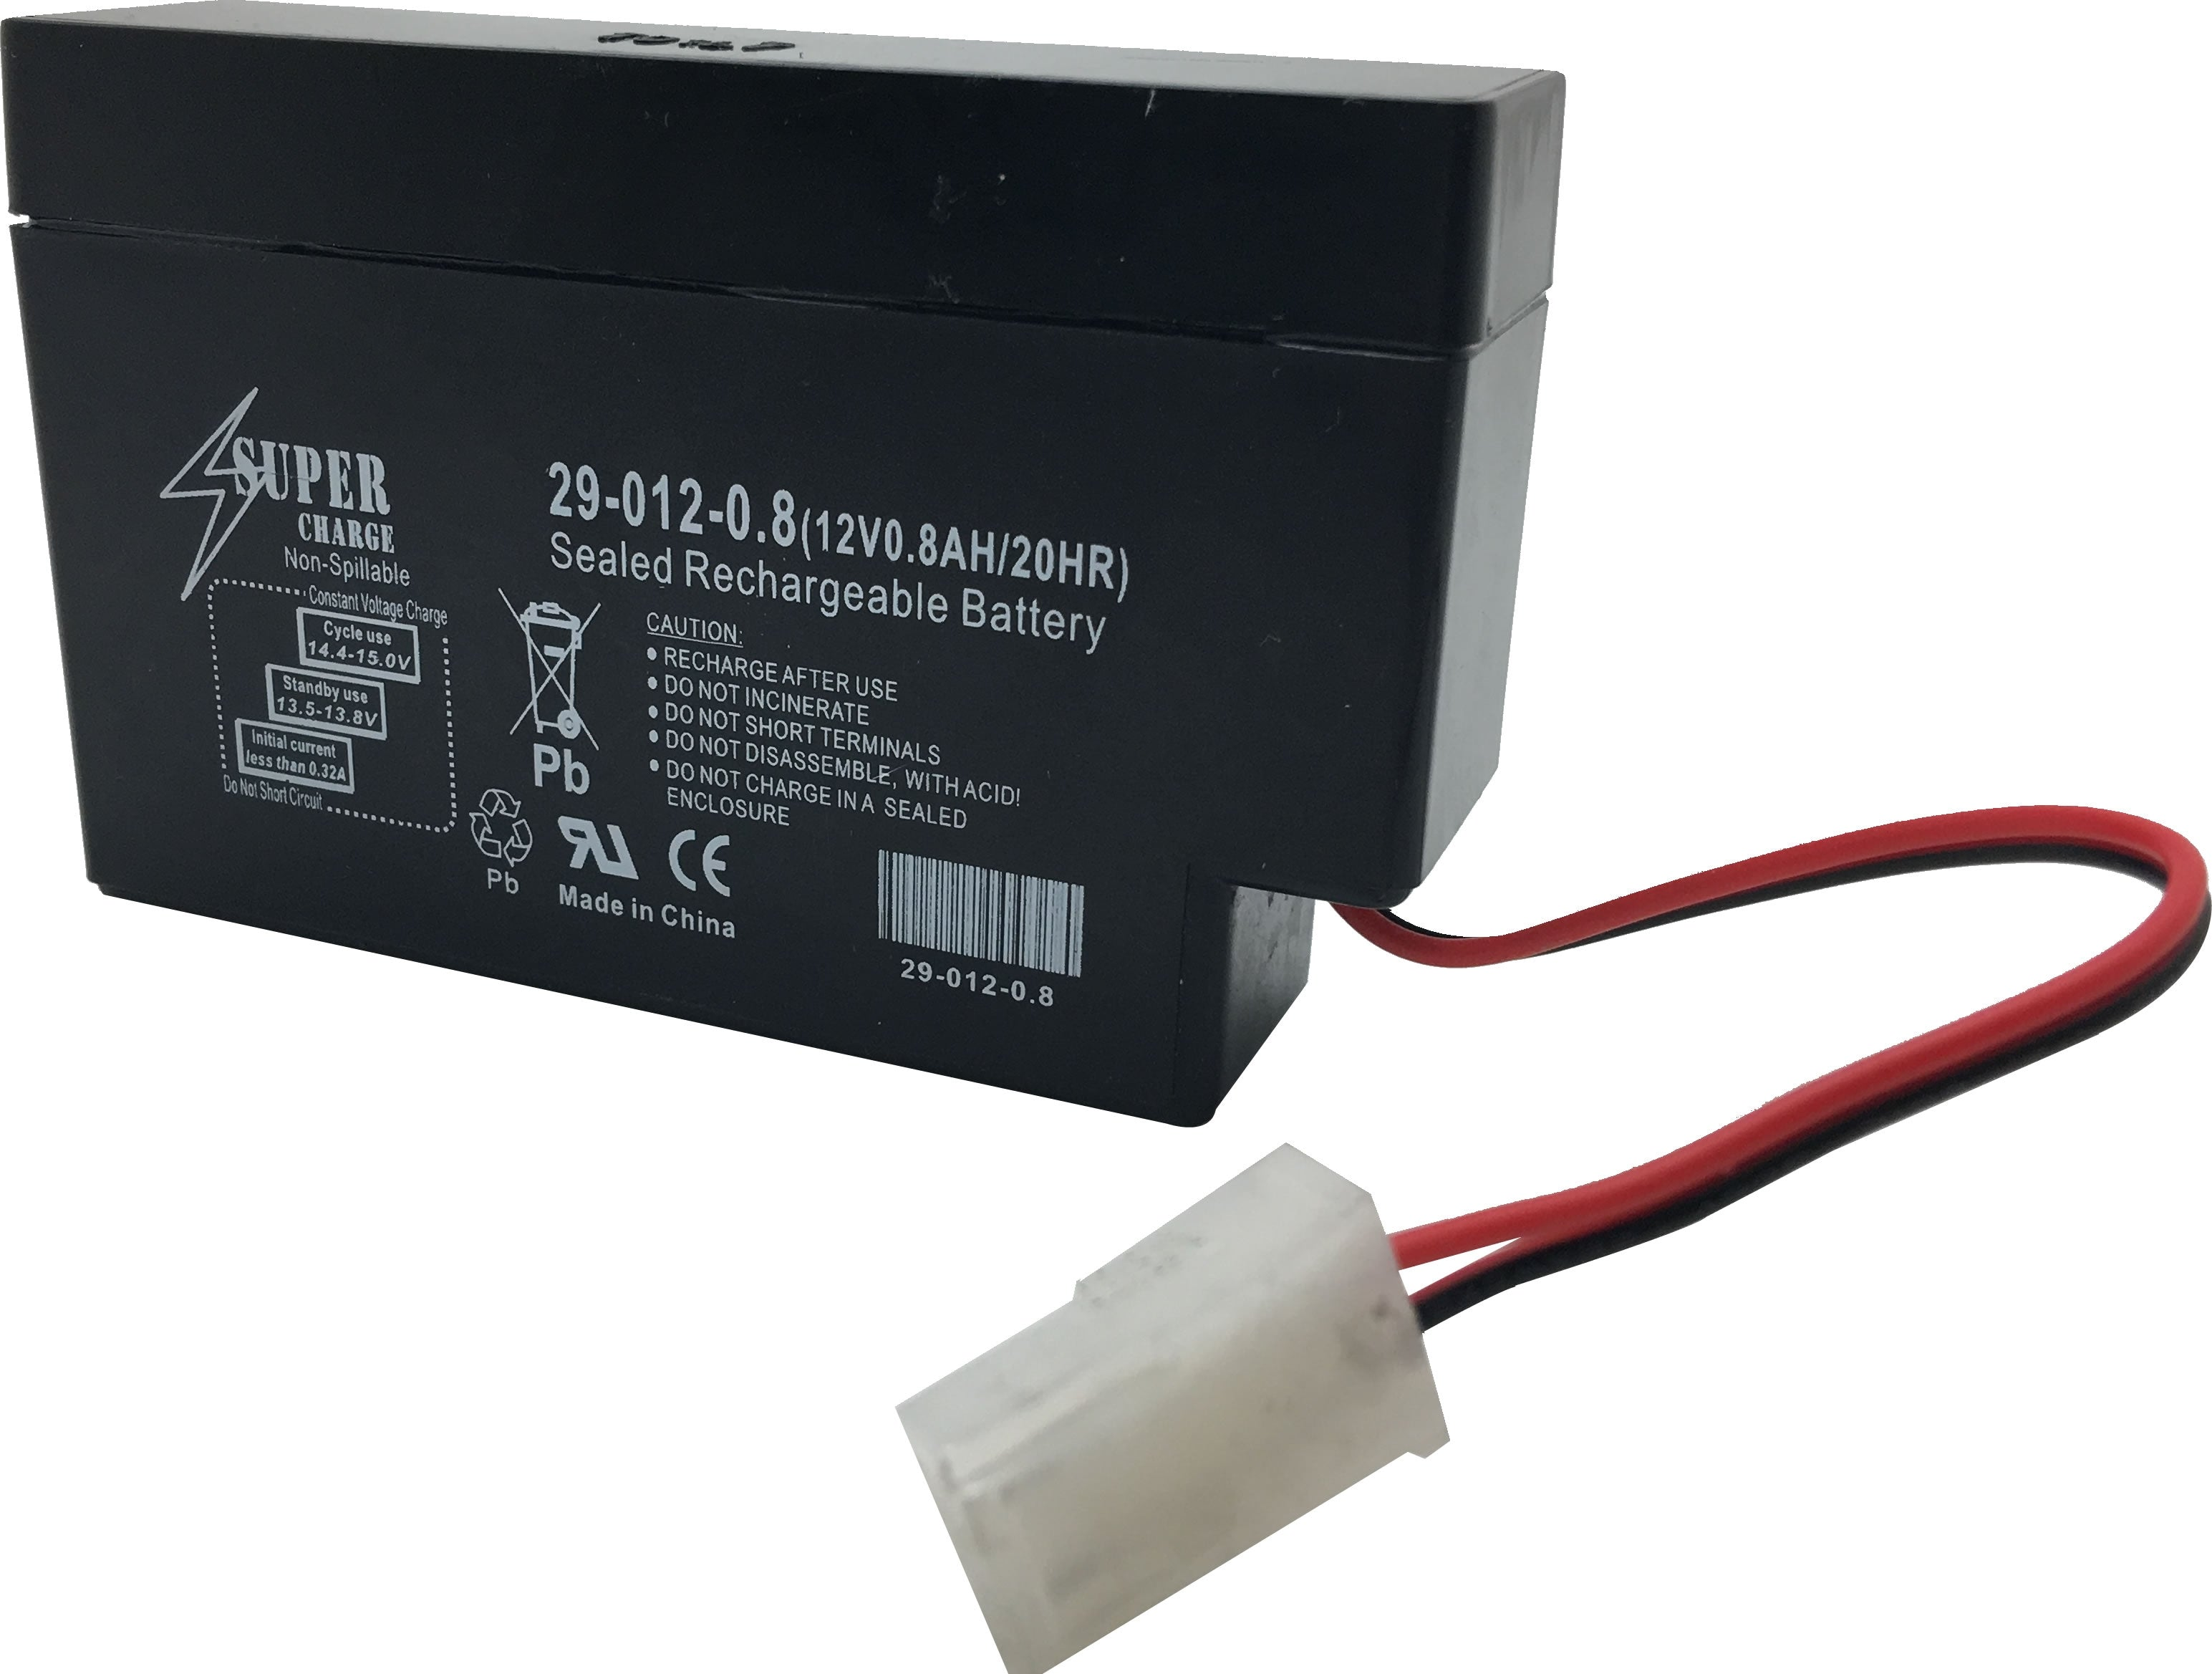 29-012-0.8 Rechargeable Battery 12V 0.8AH 20HR